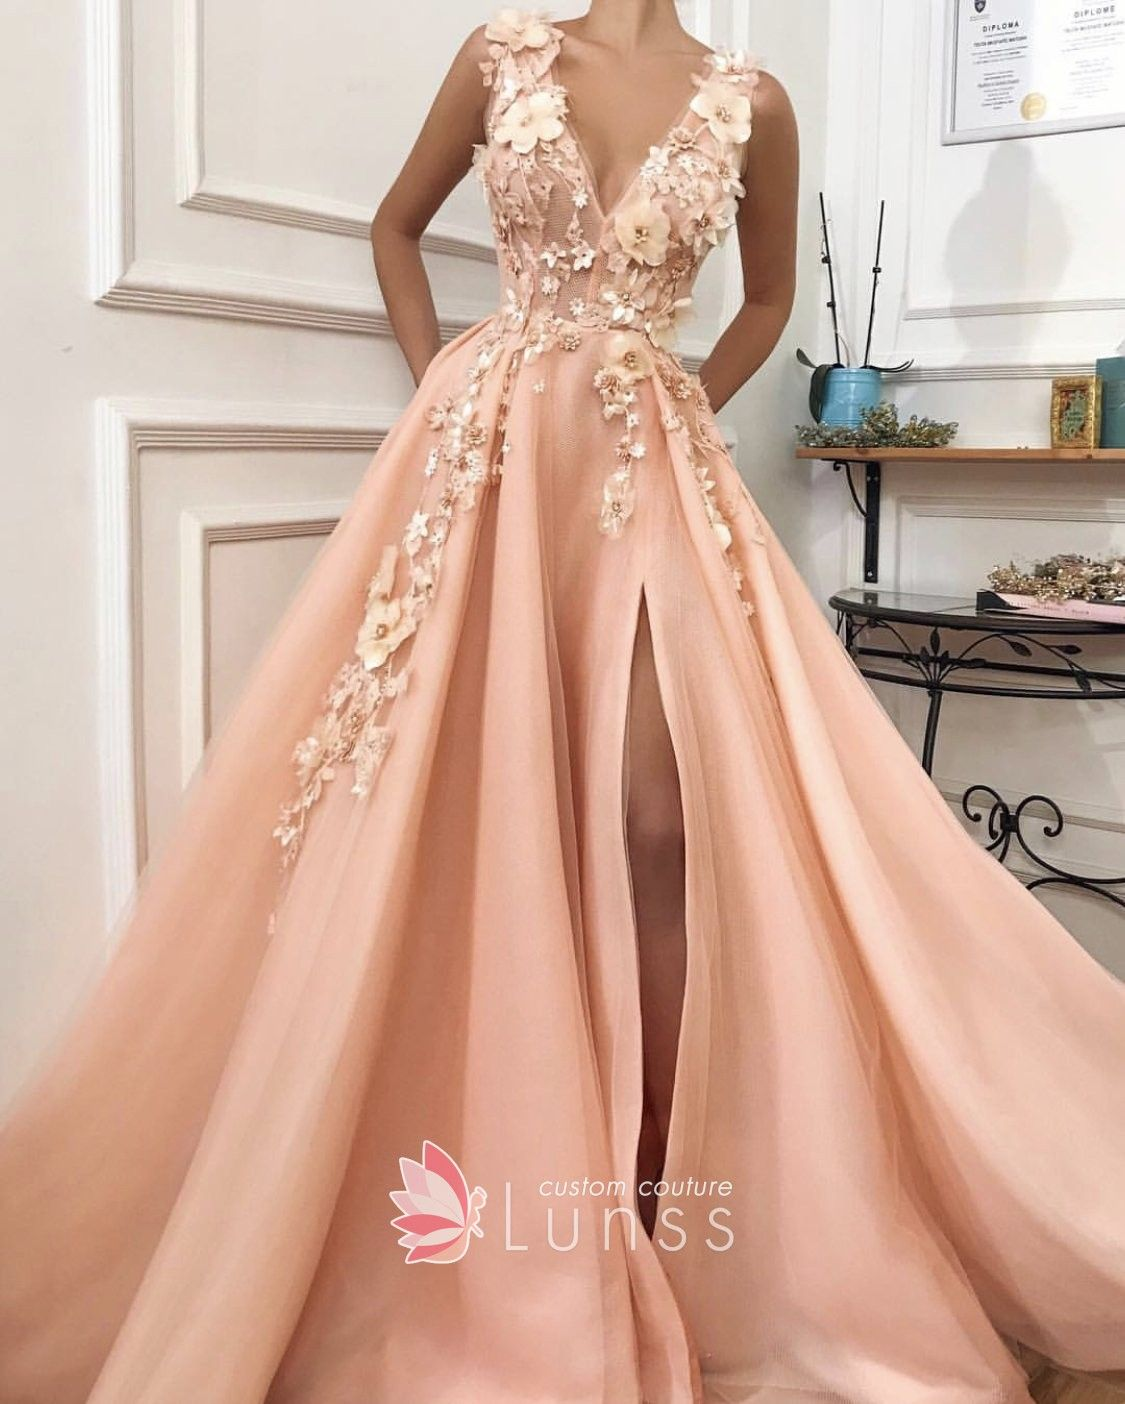 8a048702eb1 Pink salmon mesh long A-line evening   special occasion dress with  embroidered flowers and high slit. V neckline.